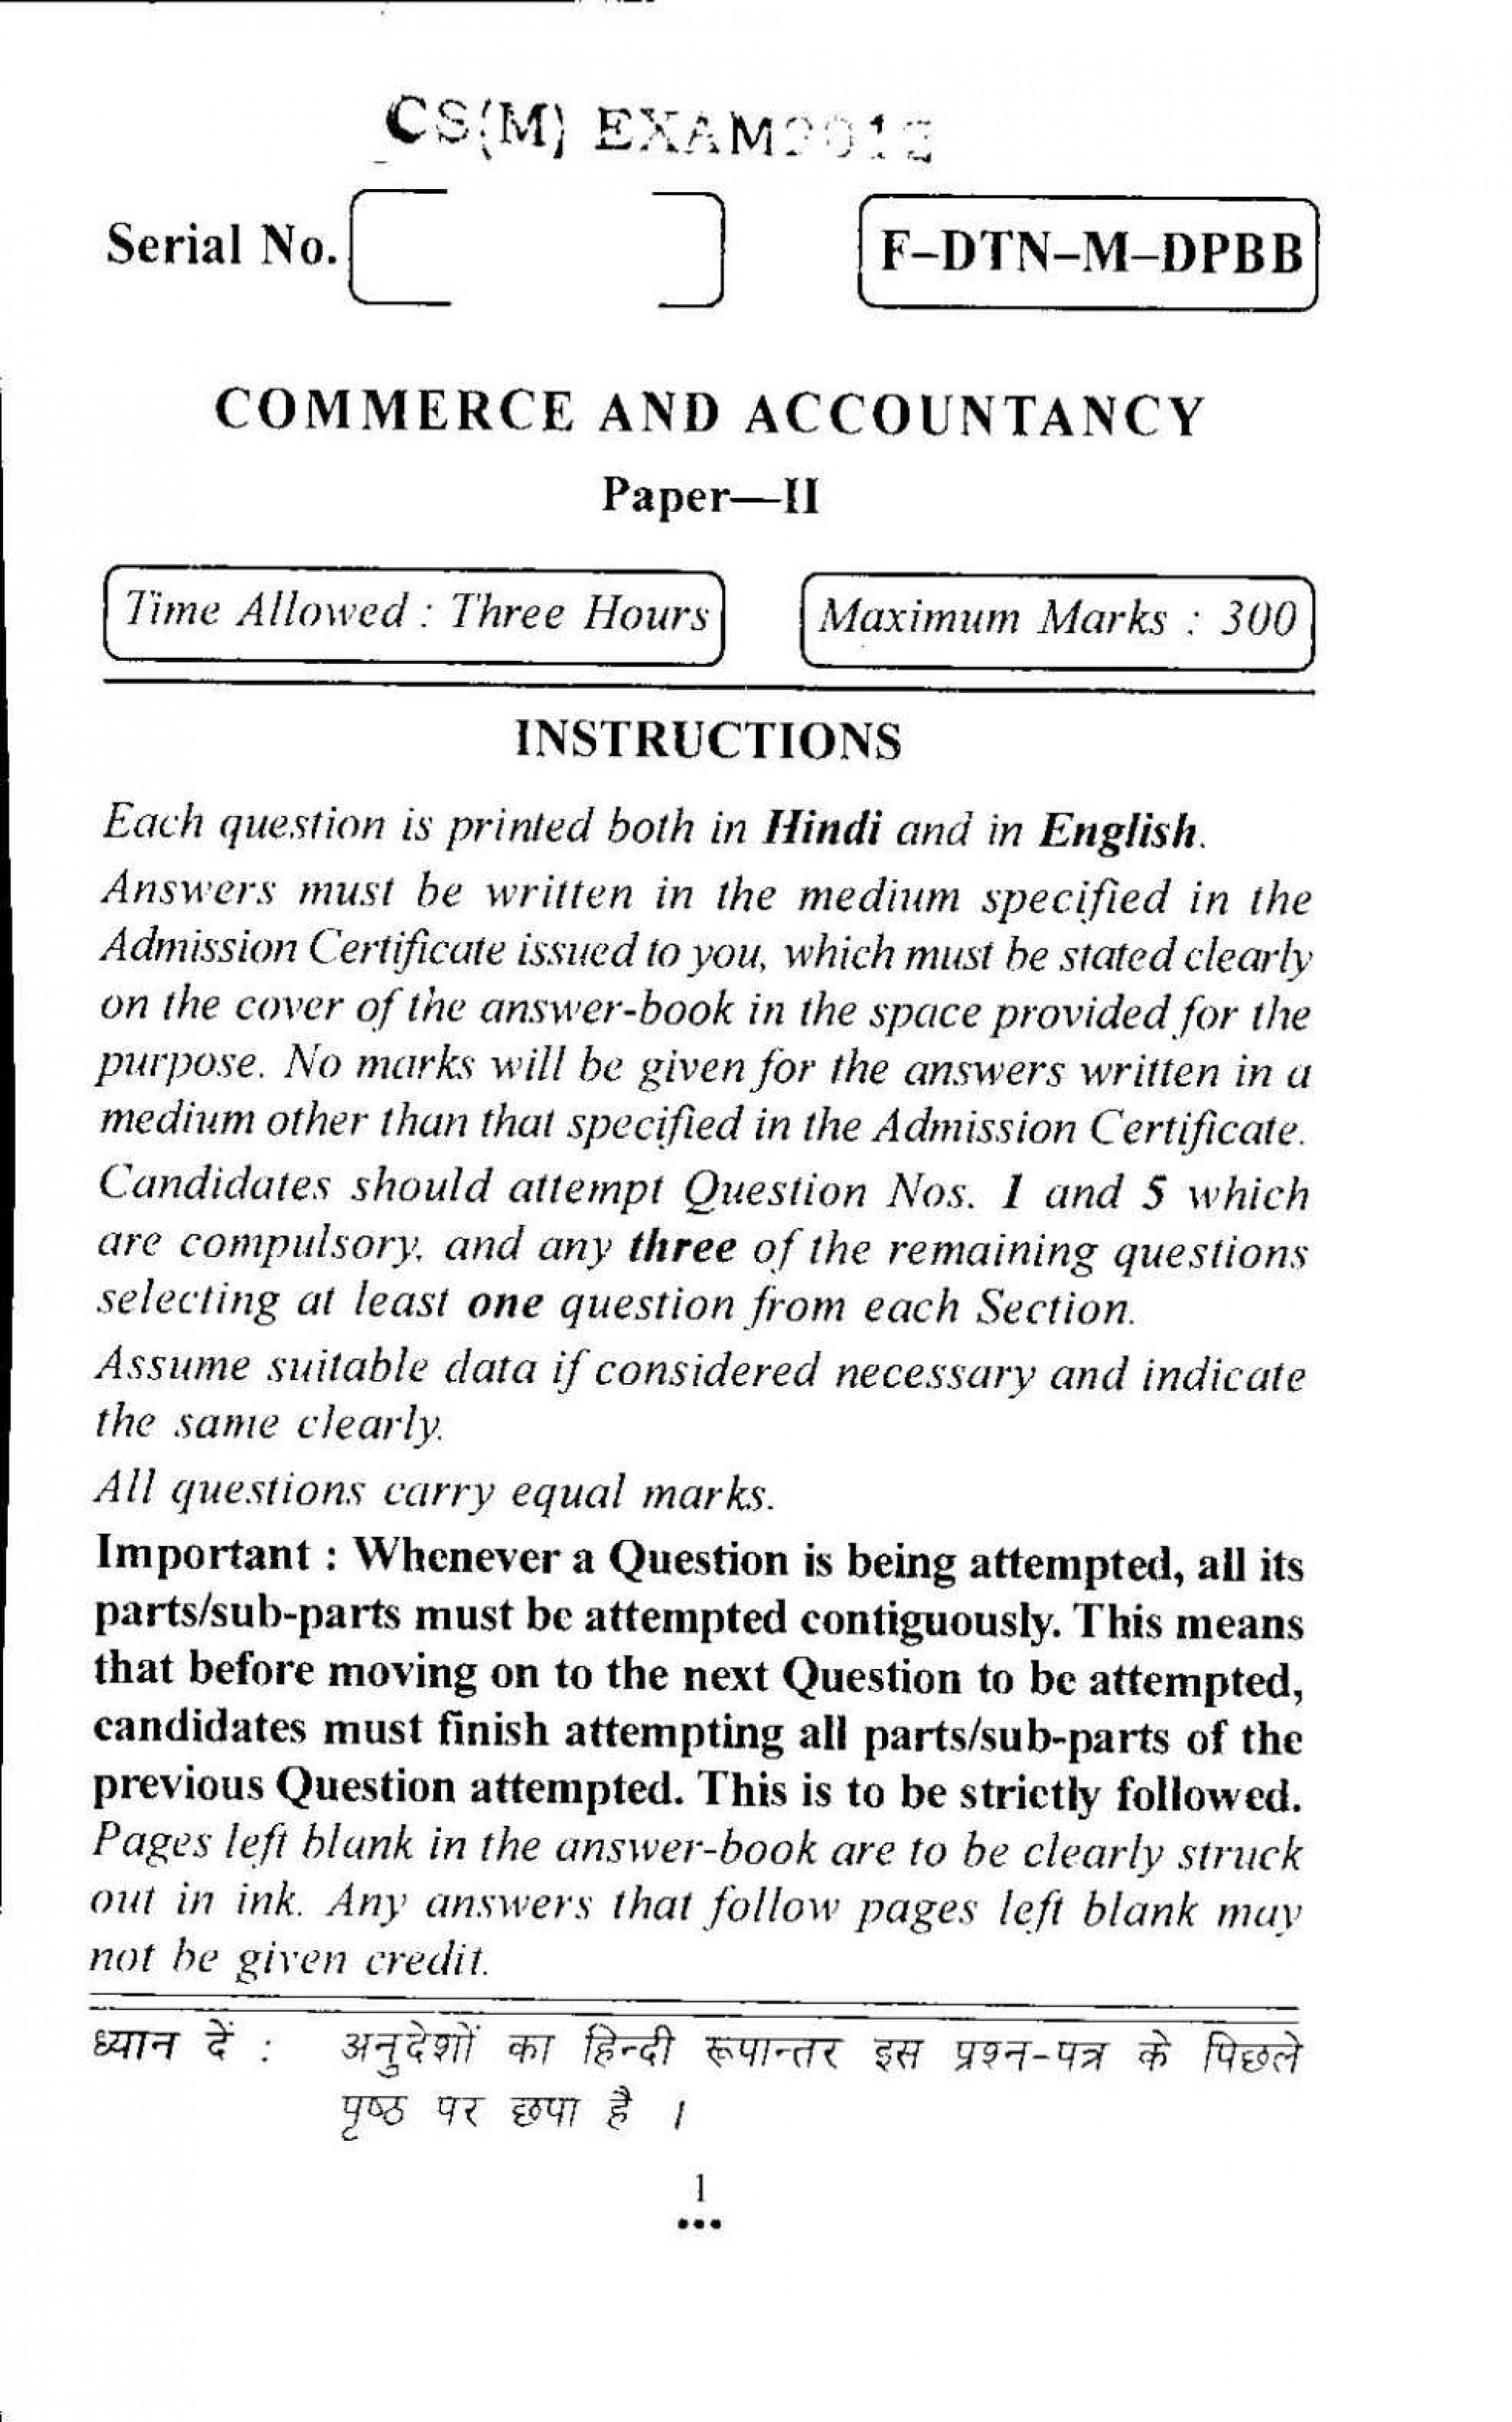 013 Civil Services Examination Commerce And Accountancy Paper Ii Previous Years Que Essay On Racism Exceptional In Hindi Conclusion Othello 1920